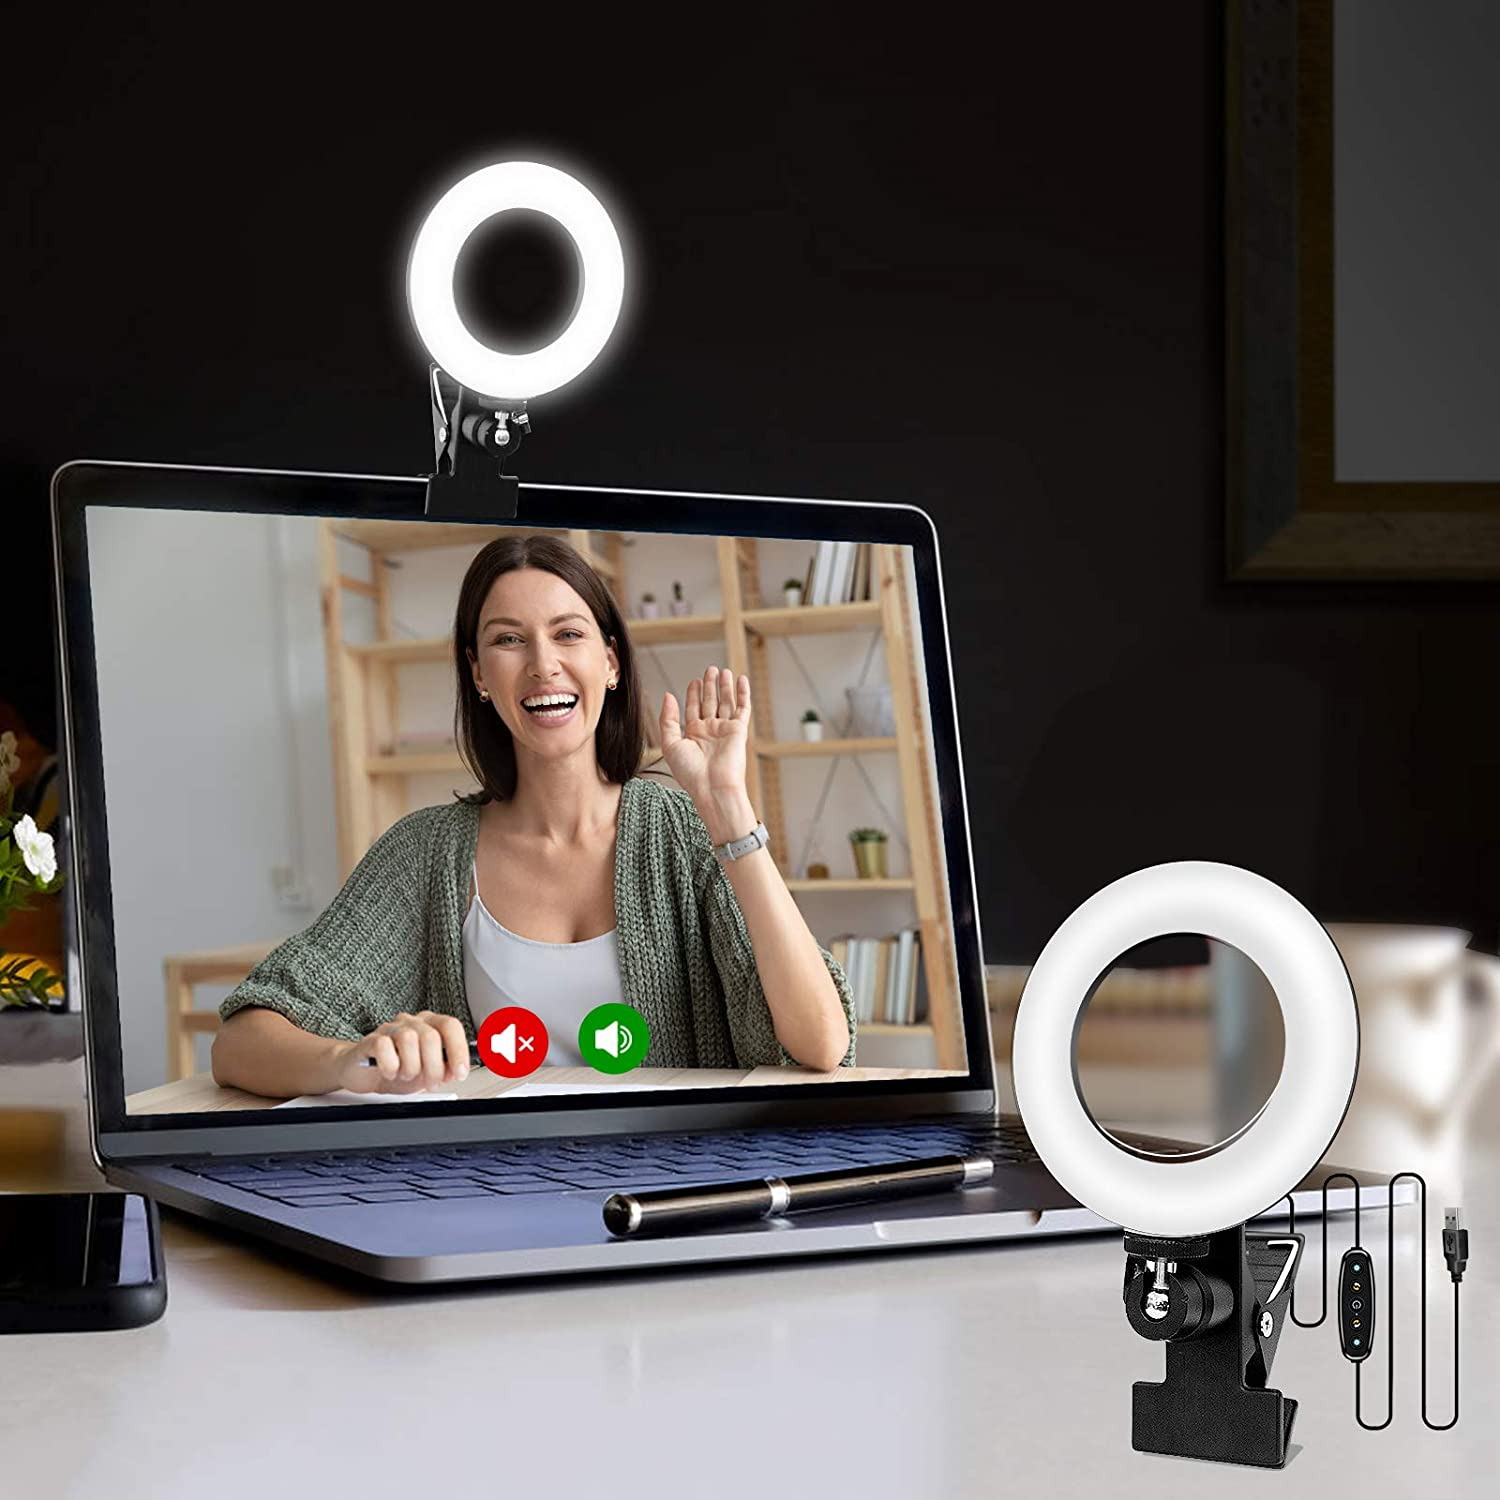 Cyezcor Video Conference Lighting Kit, Light for Monitor Clip On,for Remote Working, Distance Learning,Zoom Call Lighting, Self Broadcasting and Live Streaming, Computer Laptop Video Conferencing